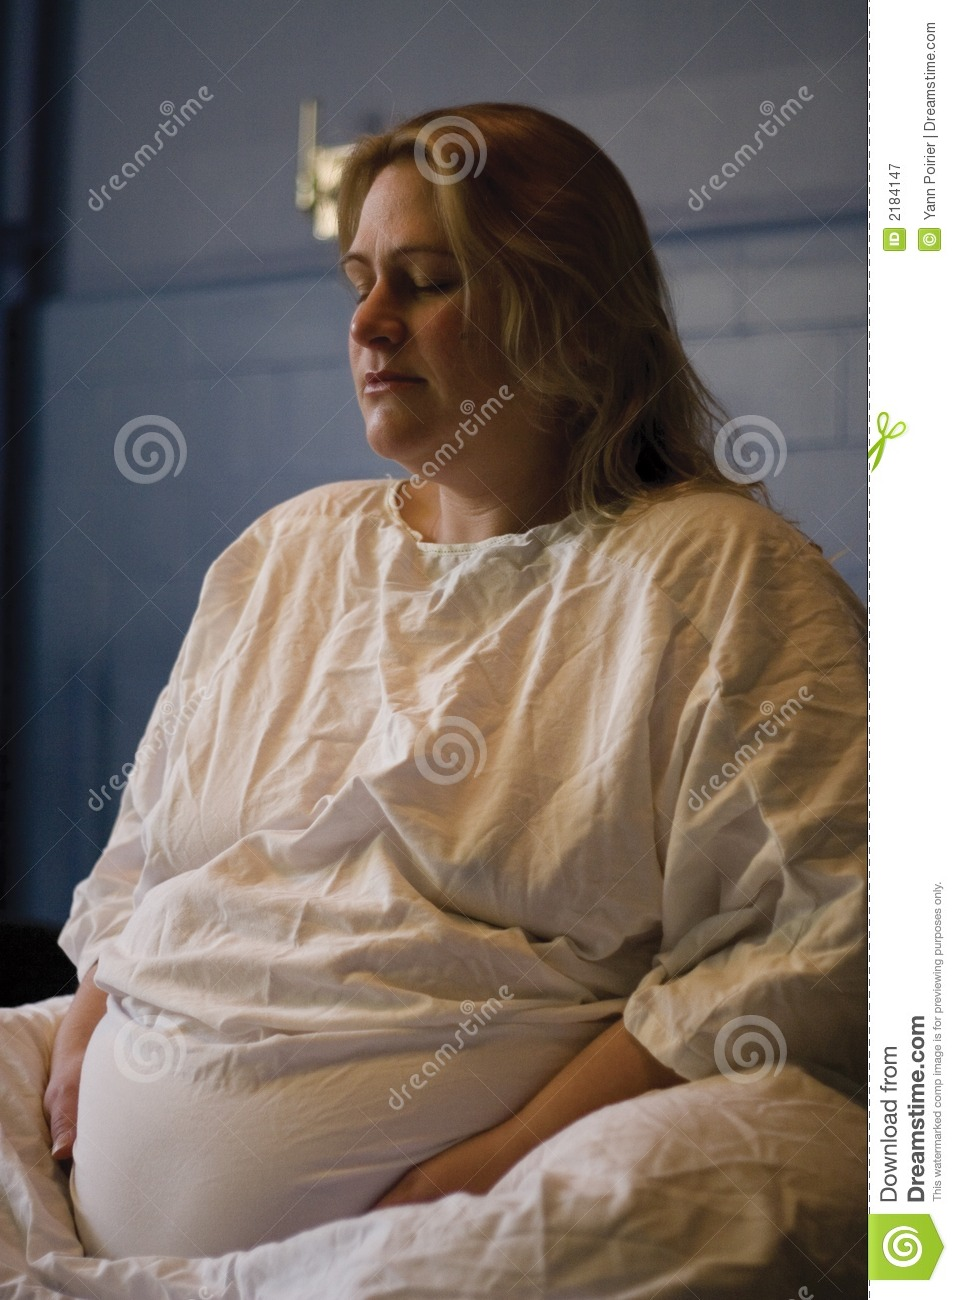 Pregnant Woman Giving Birth Stock Image - Image of cramps, exercises